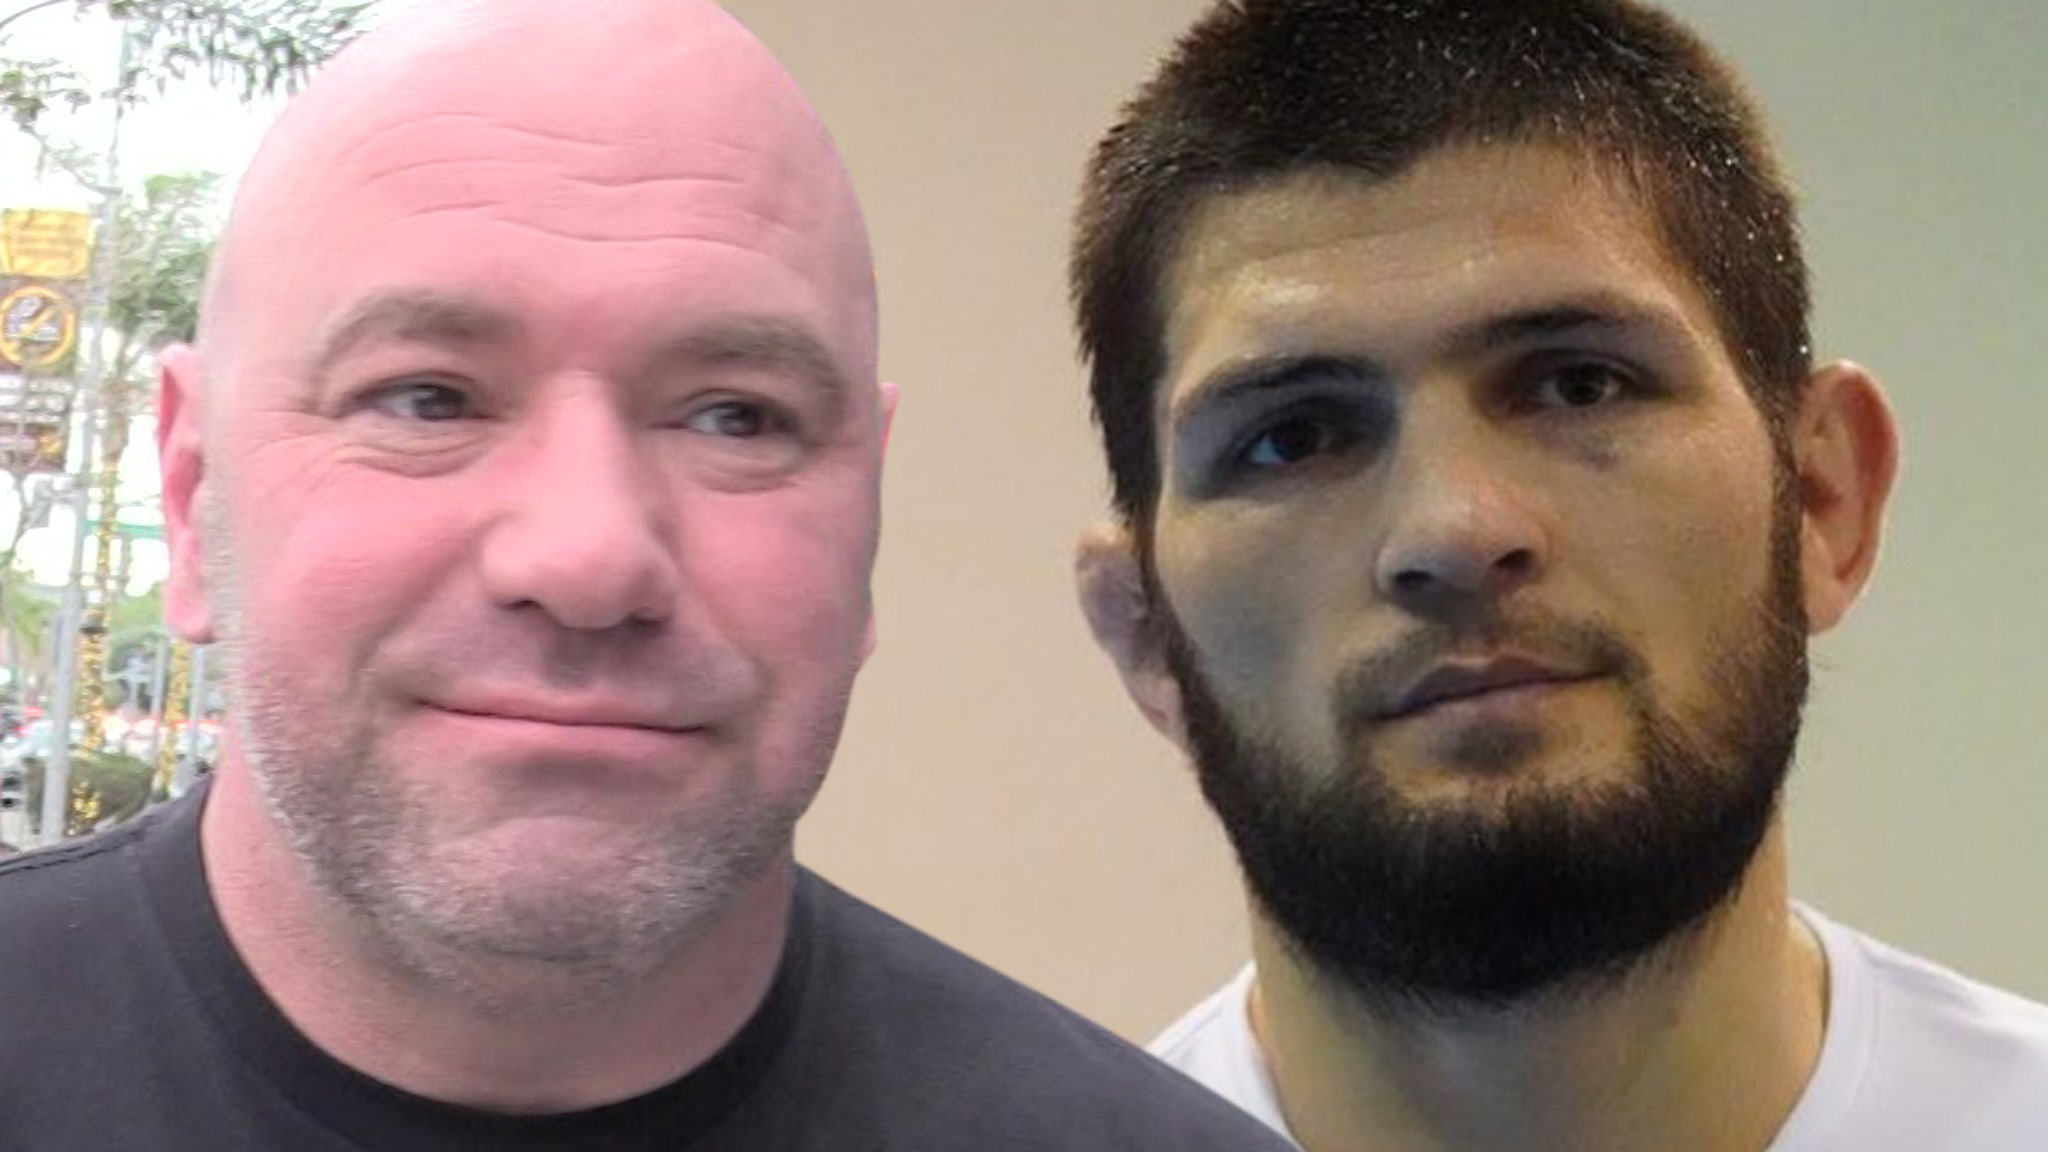 Dana White Convinced Khabib Will Unretire and Fight Again, 'We've Been Talking'